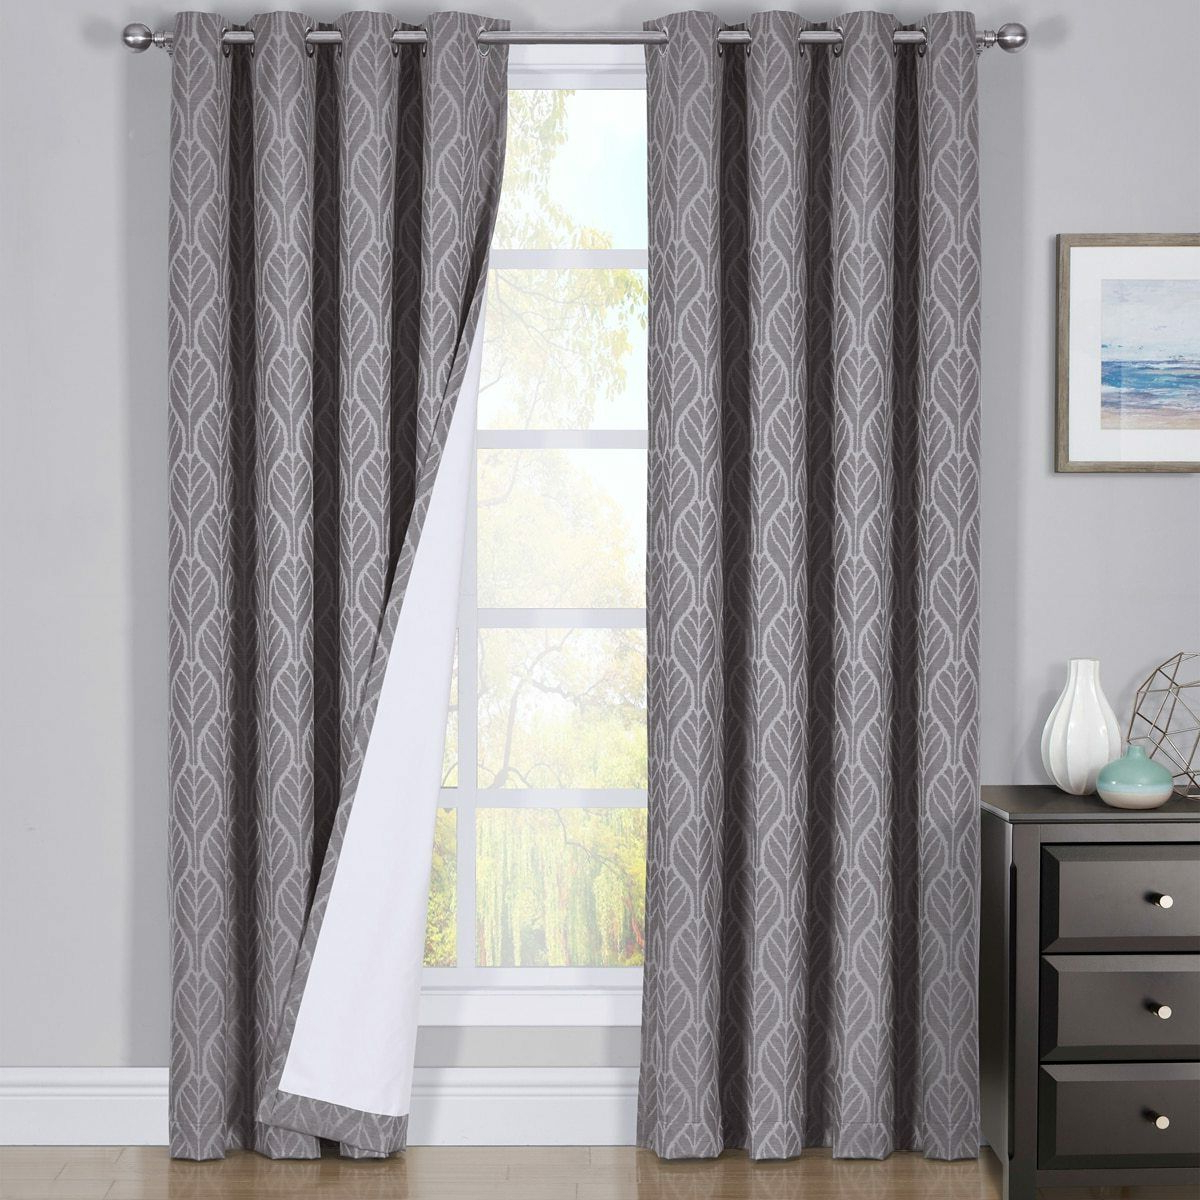 Best And Newest Hilton Window Treatment Thermal Insulated Grommet Blackout Curtains /drapes Pair Intended For Hudson Pintuck Window Curtain Valances (View 15 of 20)